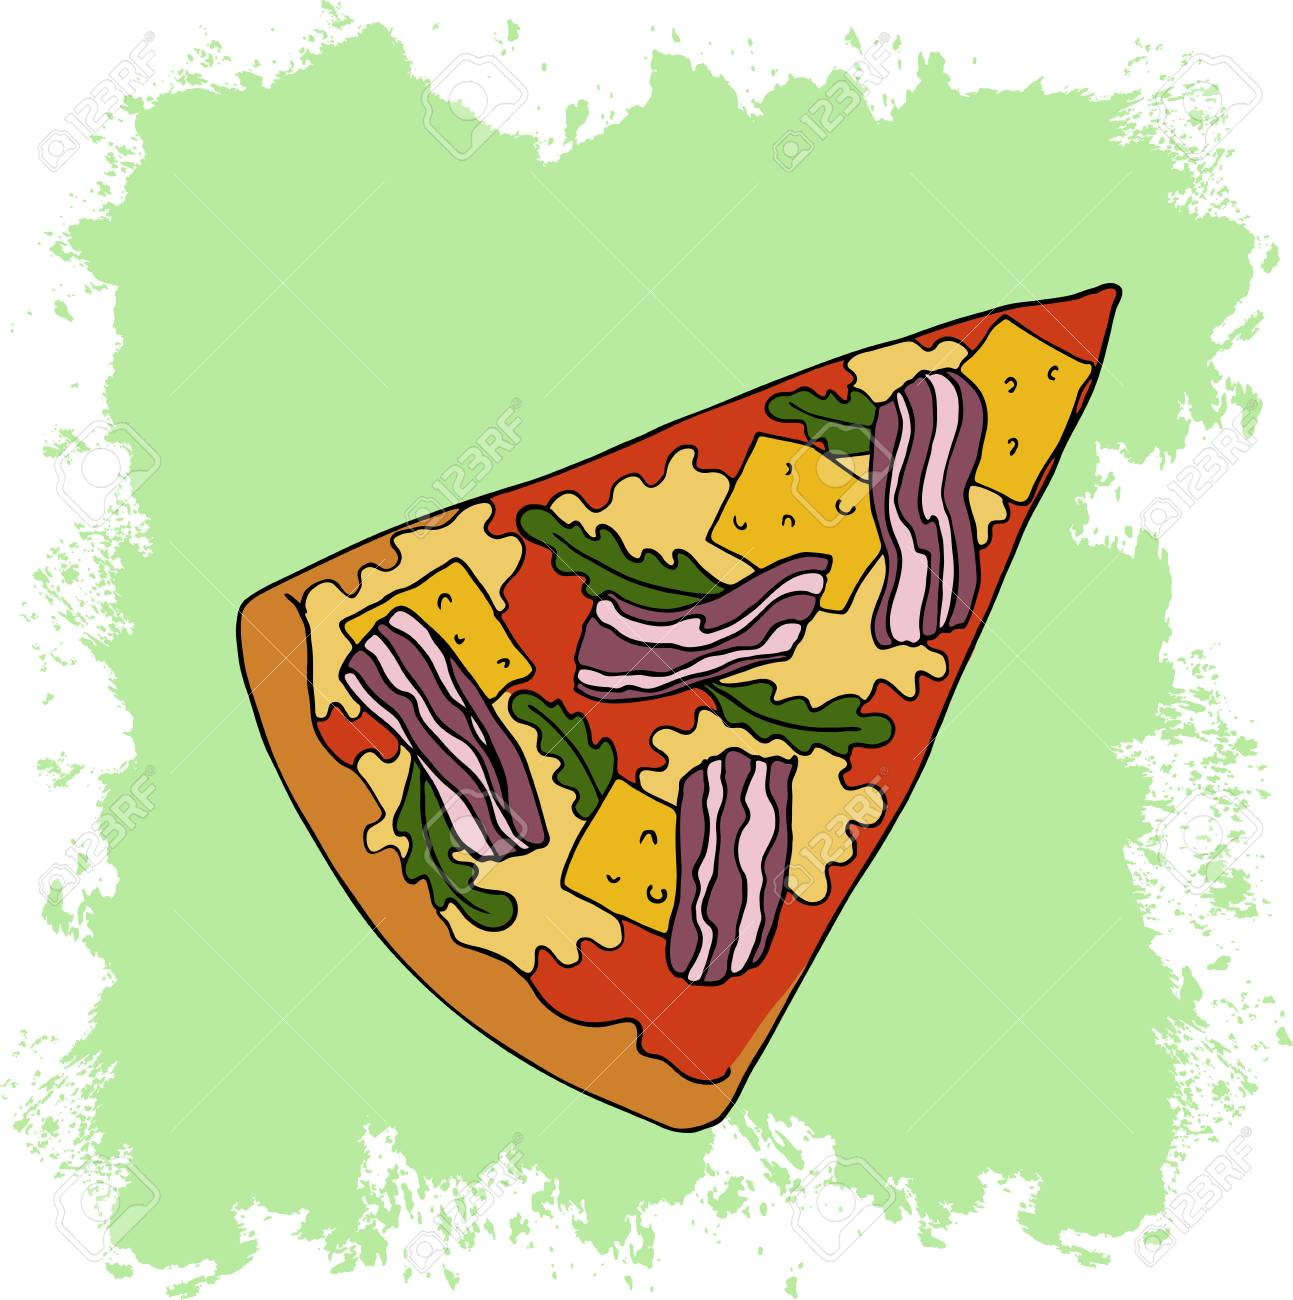 Slice of pizza with cheese. bacon and arugula on abstract pastel green background. Cartoon sketch drawn by ink. Hand drawn vector illustration. - 105910768